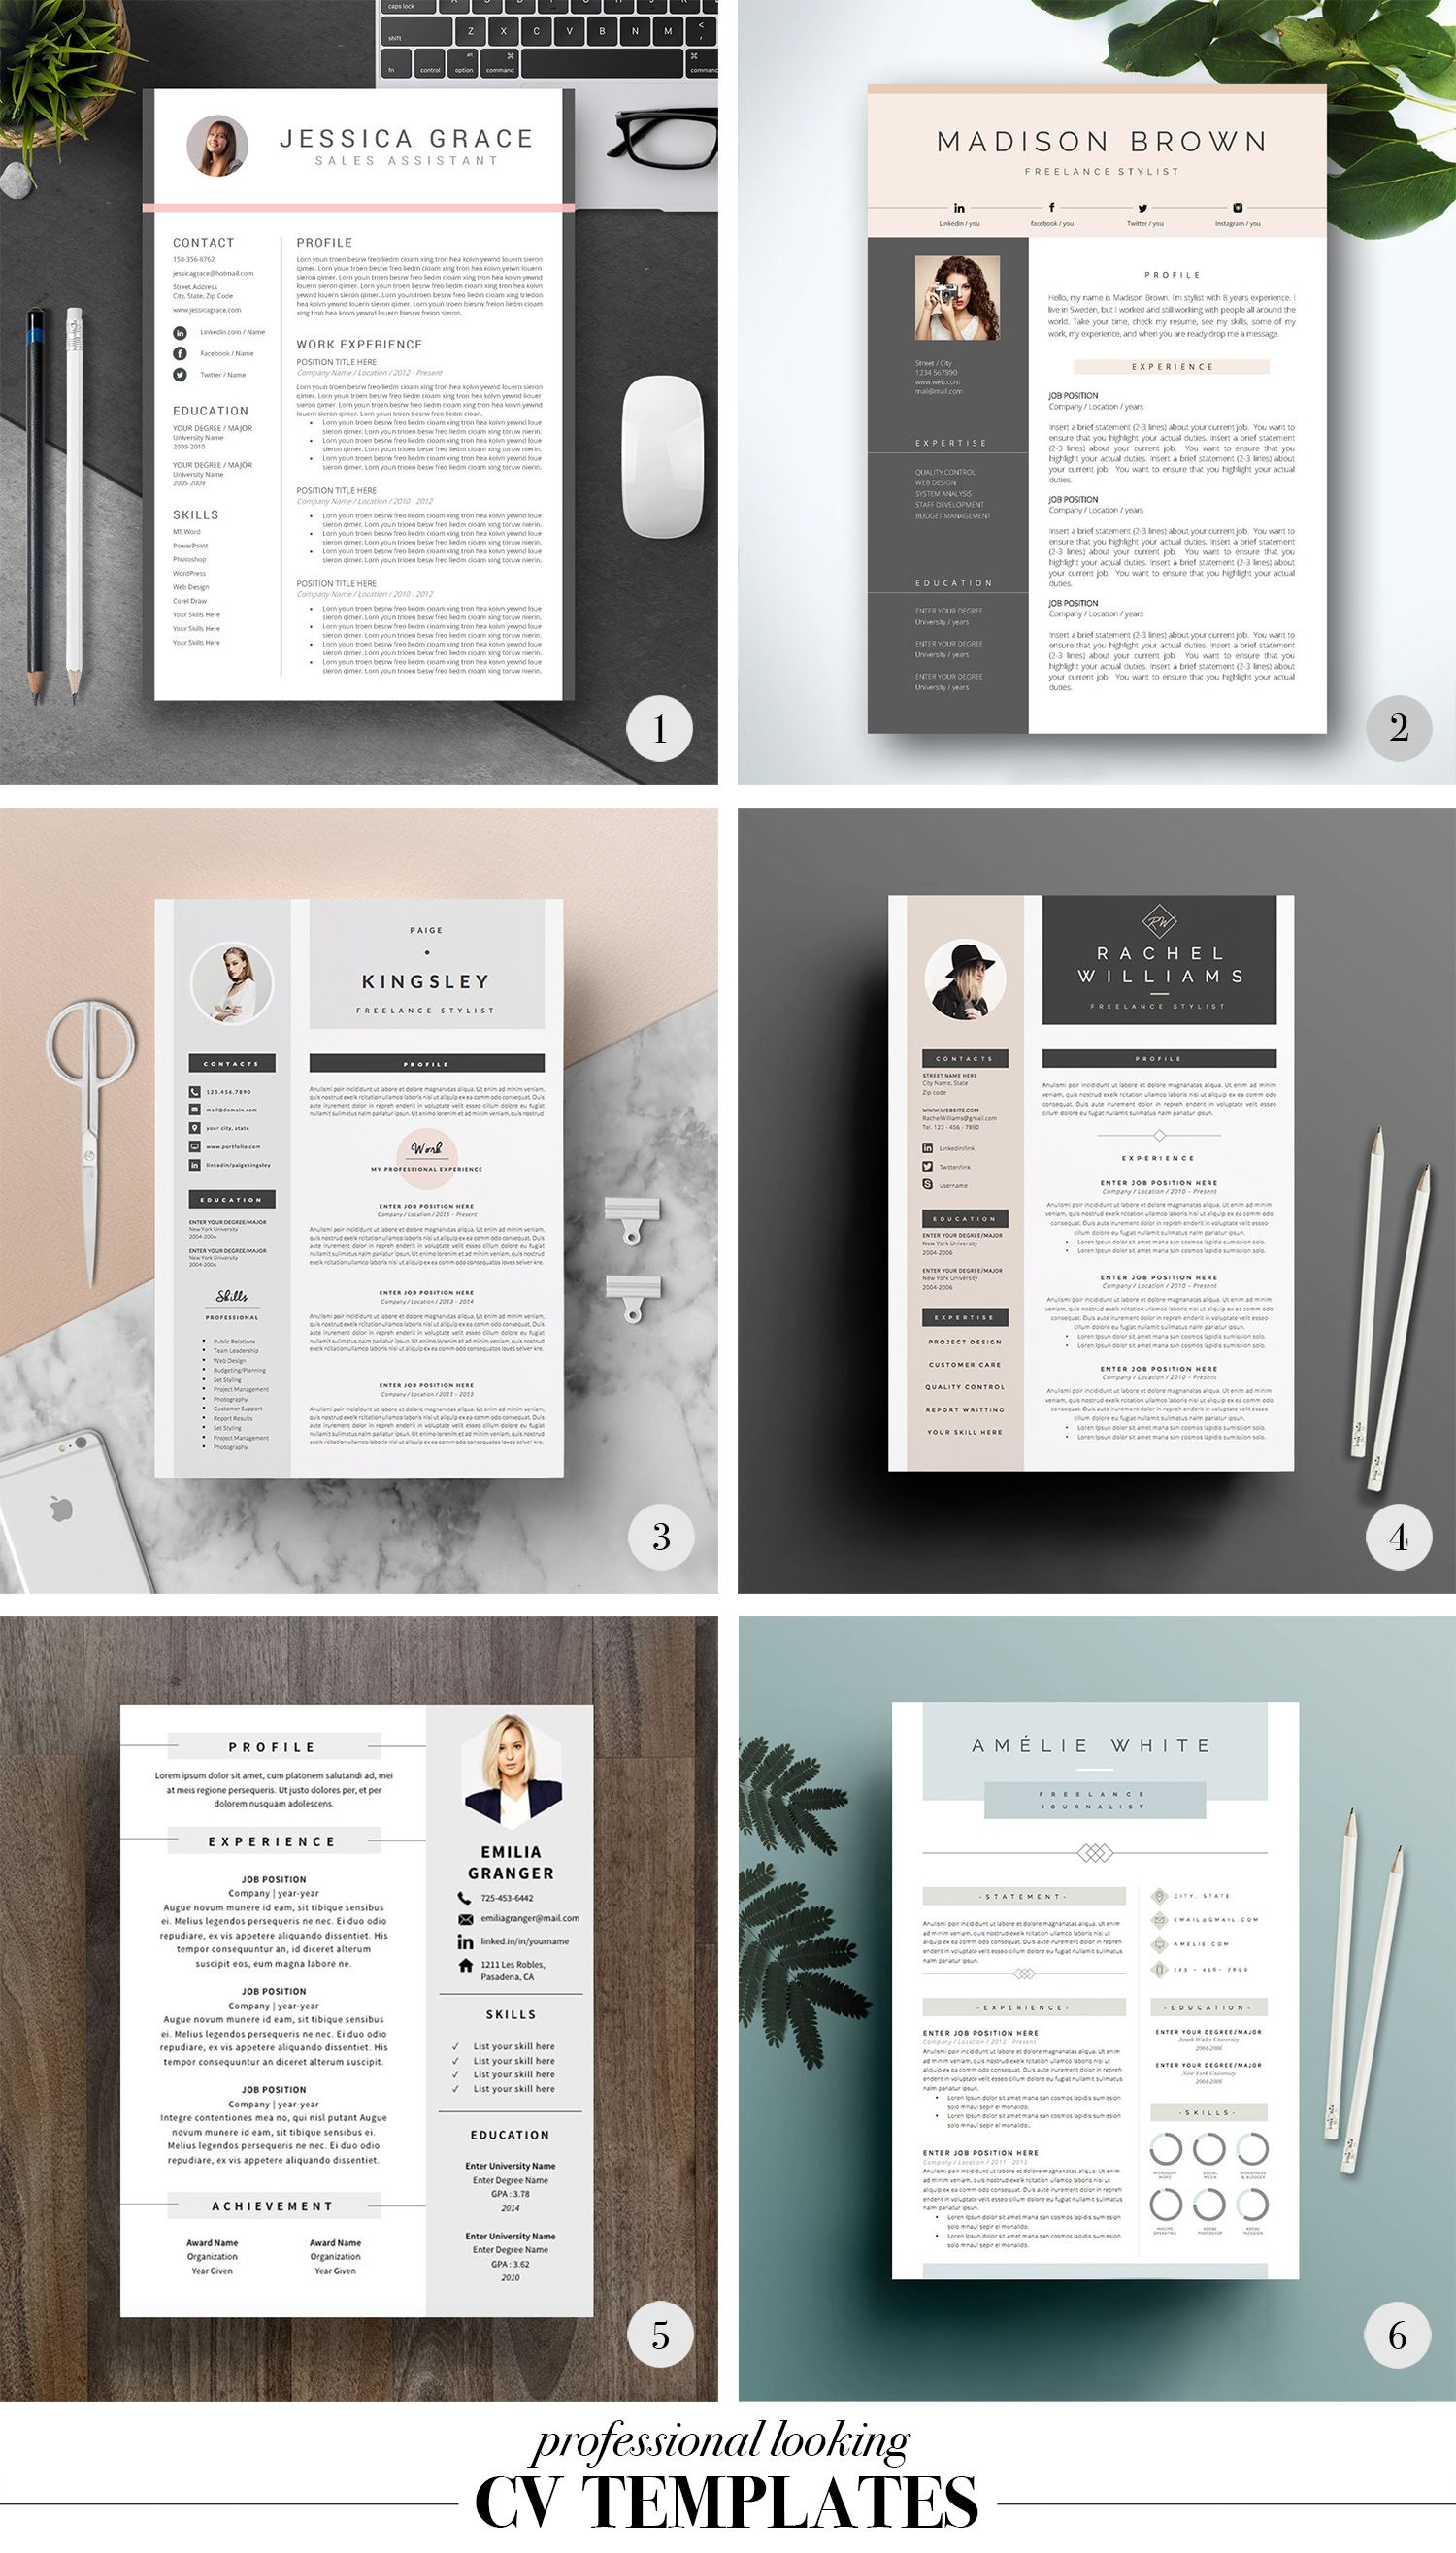 jielde lamp passions for fashion professional cv cv template templates middot colores maacutes middot professional cv